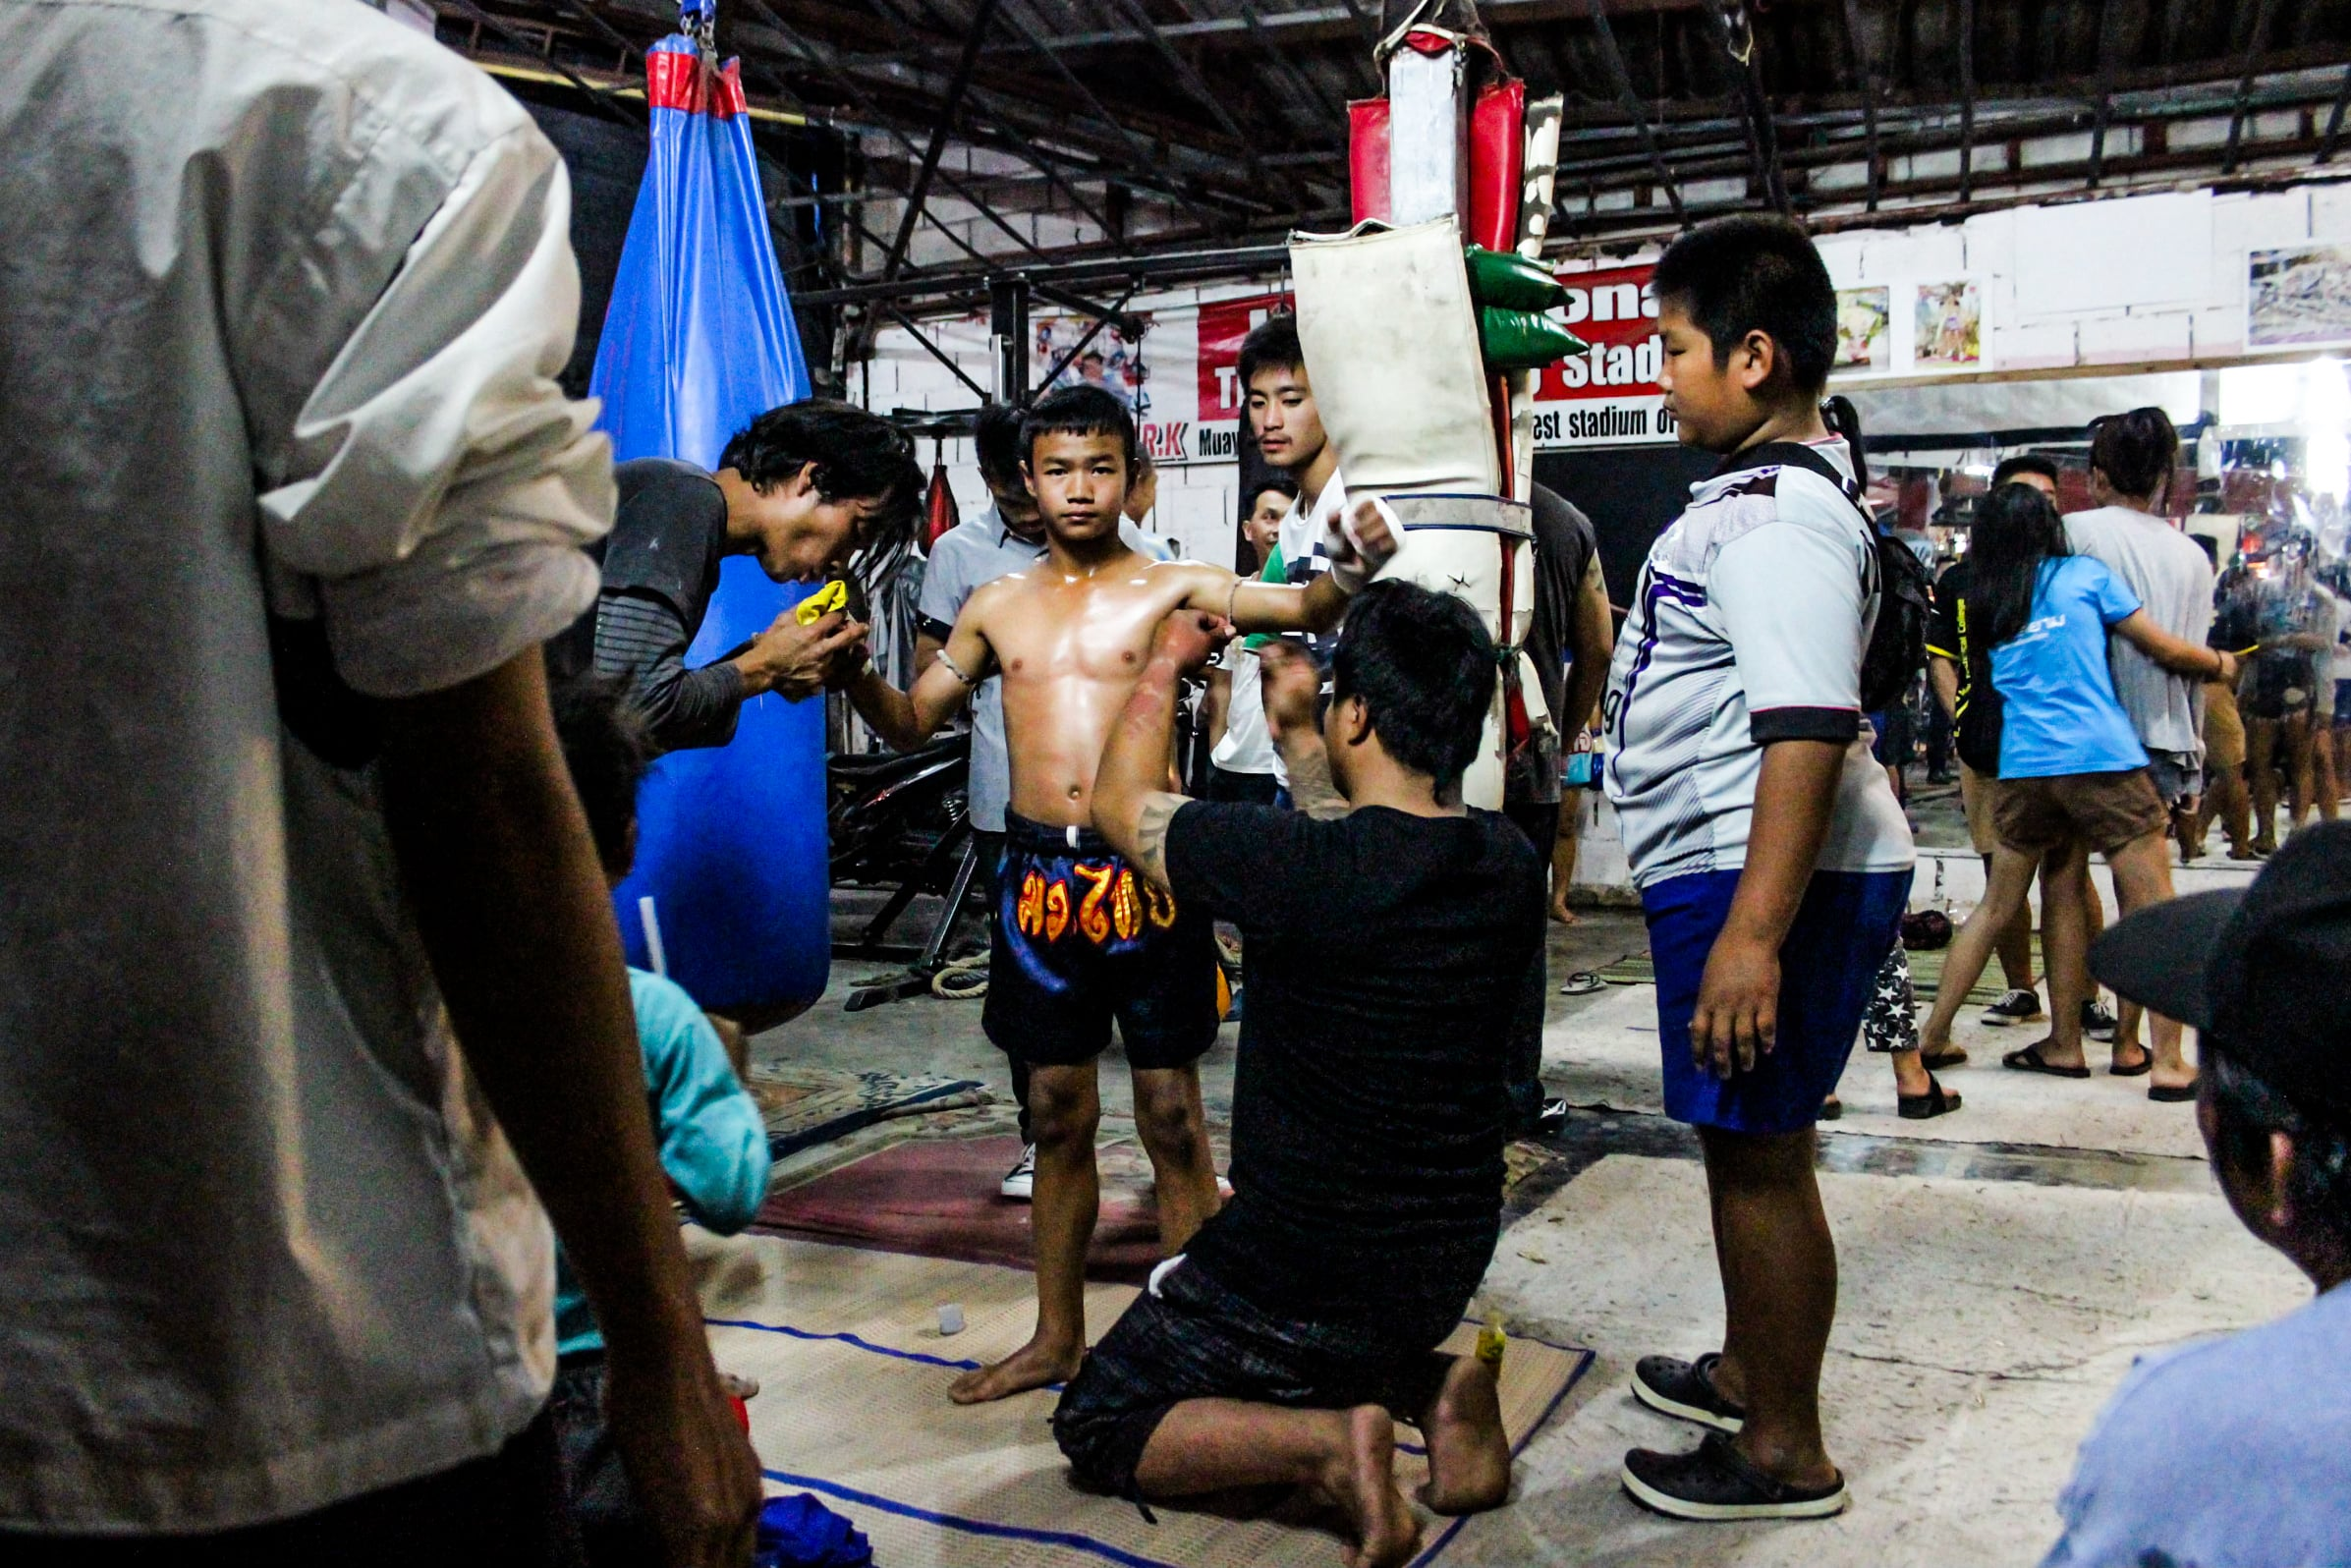 Many children are recruited to start practicing Muay Thai from as young as seven years old. As trainers, spectators and gamblers watch, they fight to win glory for their gym and prize money. For many children and their families, Muay Thai is often seen as an escape from poverty.